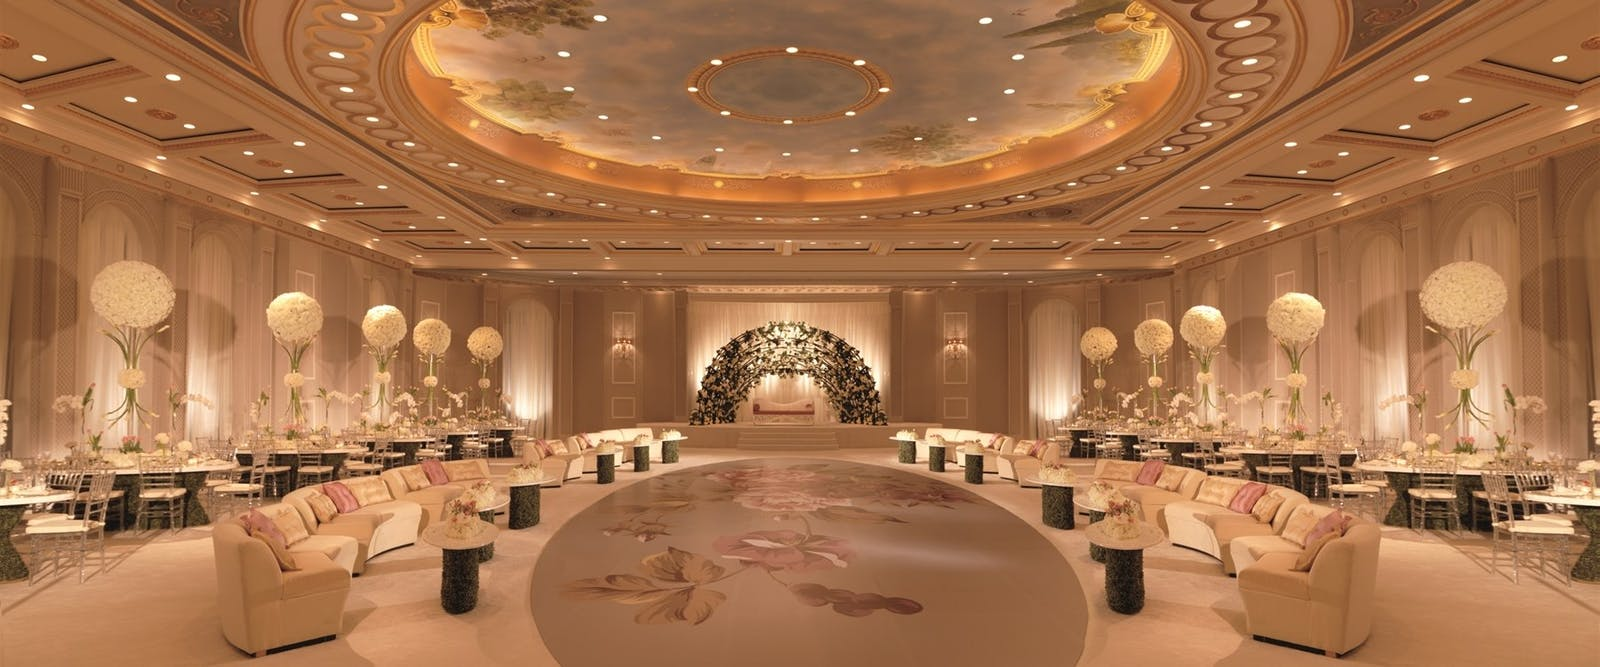 Ballroom at Villas at The Ritz-Carlton